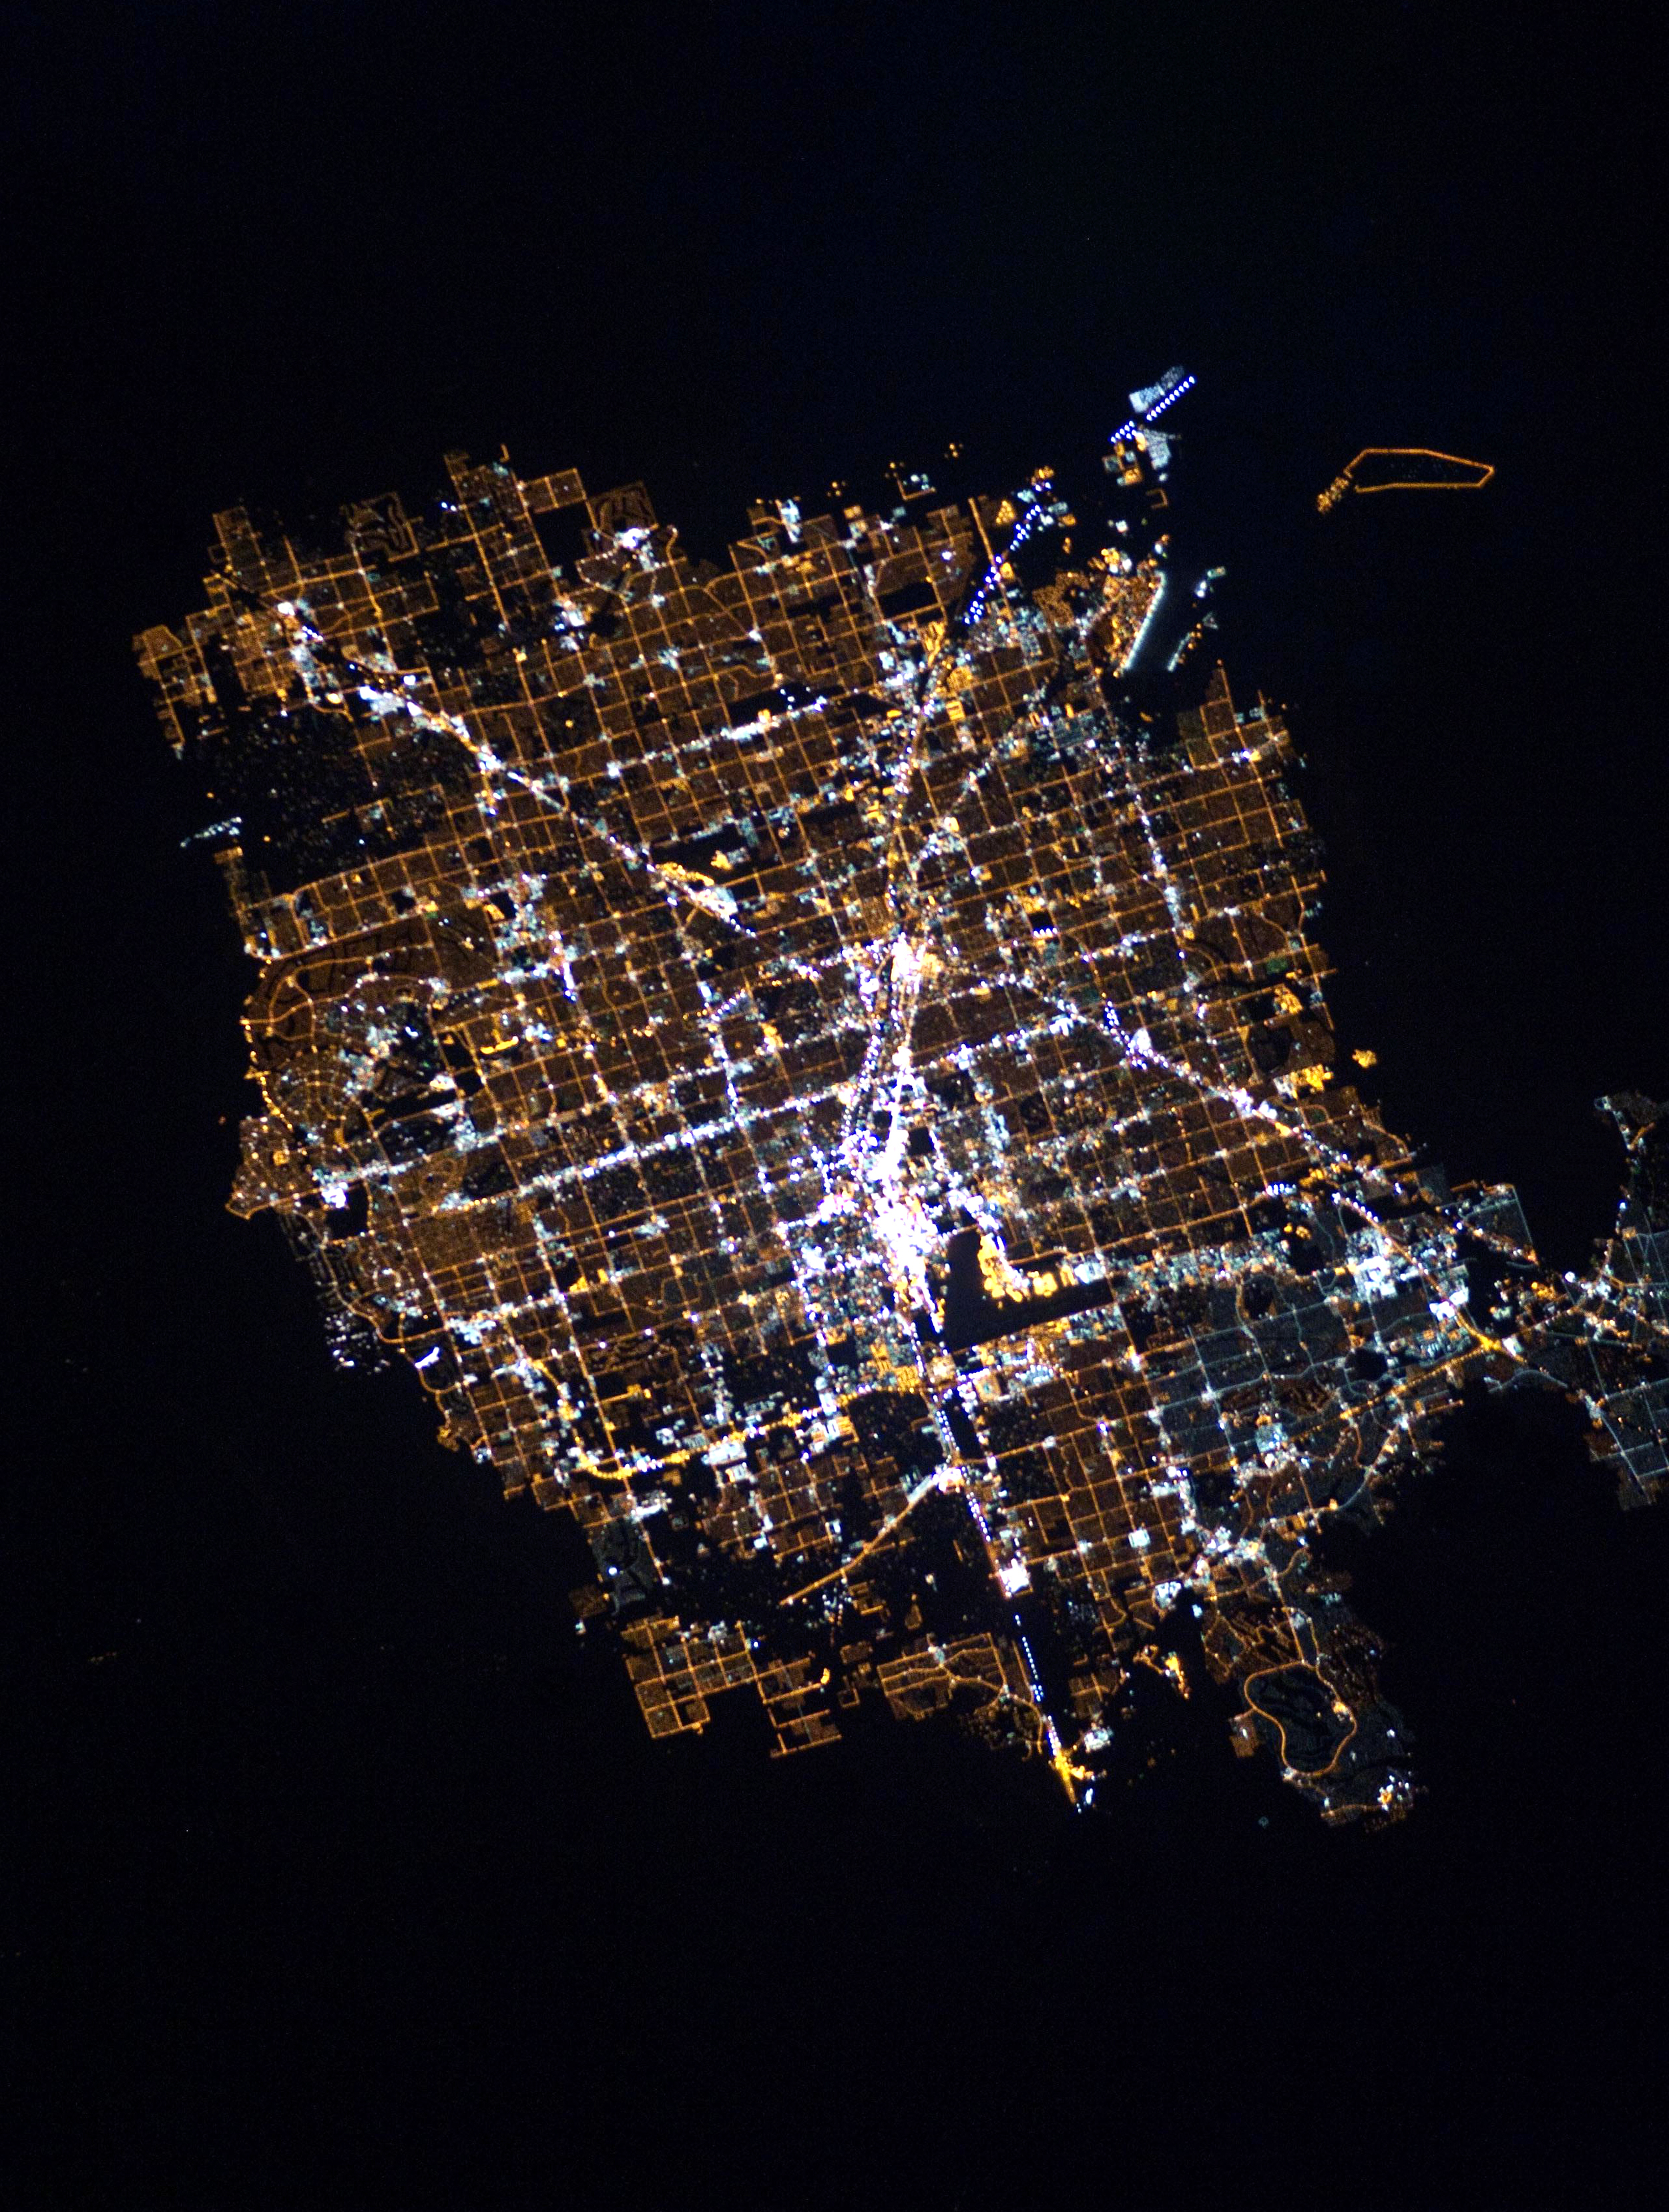 2/3/2016   Las Vegas at night   Las Vegas, Nevada, USA  36°10′30″N 115°08′11″W    The glowing lights of Las Vegas, Nevada are captured here from the International Space Station. Since the city is entirely surrounded by desert, its brightly lit grid of streets starkly contrasts the dark, undeveloped area on its outskirts. You'll also notice the Las Vegas Strip - the city's central avenue that is seen at the middle of this Overview. This particular area is one of the brightest spots on Earth due to the concentration of lights emanating from the hotels and casinos along the road.  Source imagery courtesy of NASA